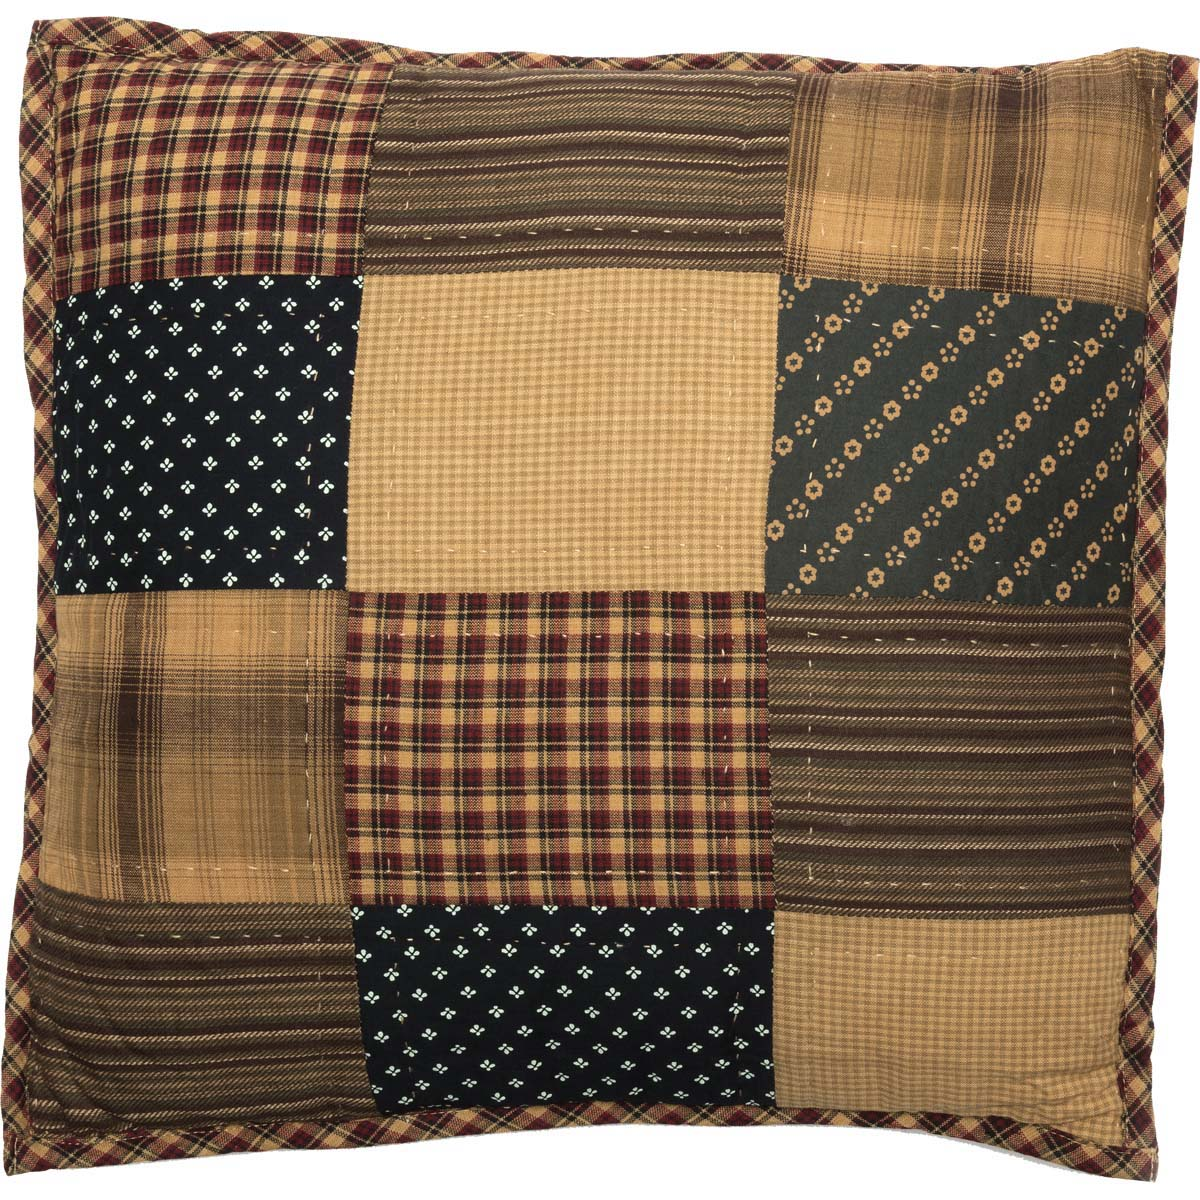 Patriotic Patch Quilted Cushion 16""